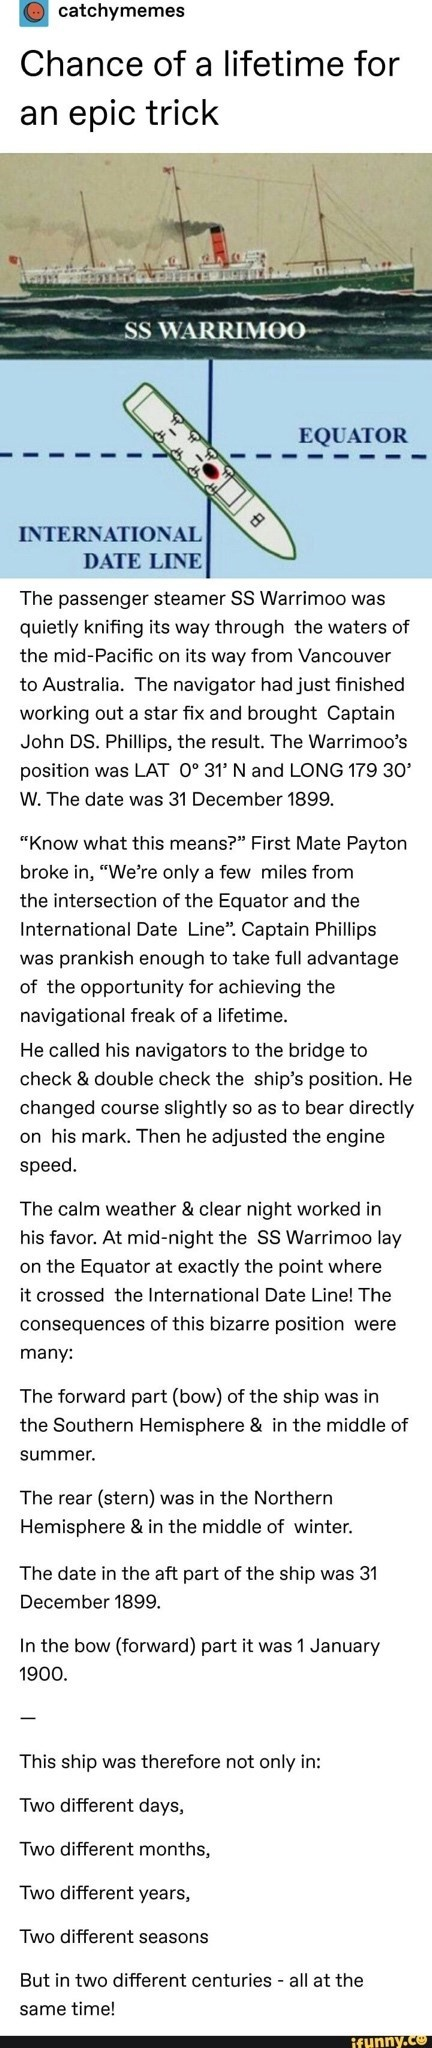 """Text - catchymemes Chance of a lifetime for an epic trick SS WARRIMOO EQUATOR INTERNATIONAL DATE LINE The passenger steamer SS Warrimoo was quietly knifing its way through the waters of the mid-Pacific on its way from Vancouver to Australia. The navigator had just finished working out a star fix and brought Captain John DS. Phillips, the result. The Warrimoo's position was LAT 0° 31' N and LONG 179 30 W. The date was 31 December 1899. """"Know what this means?"""" First Mate Payton broke in, """"We're on"""